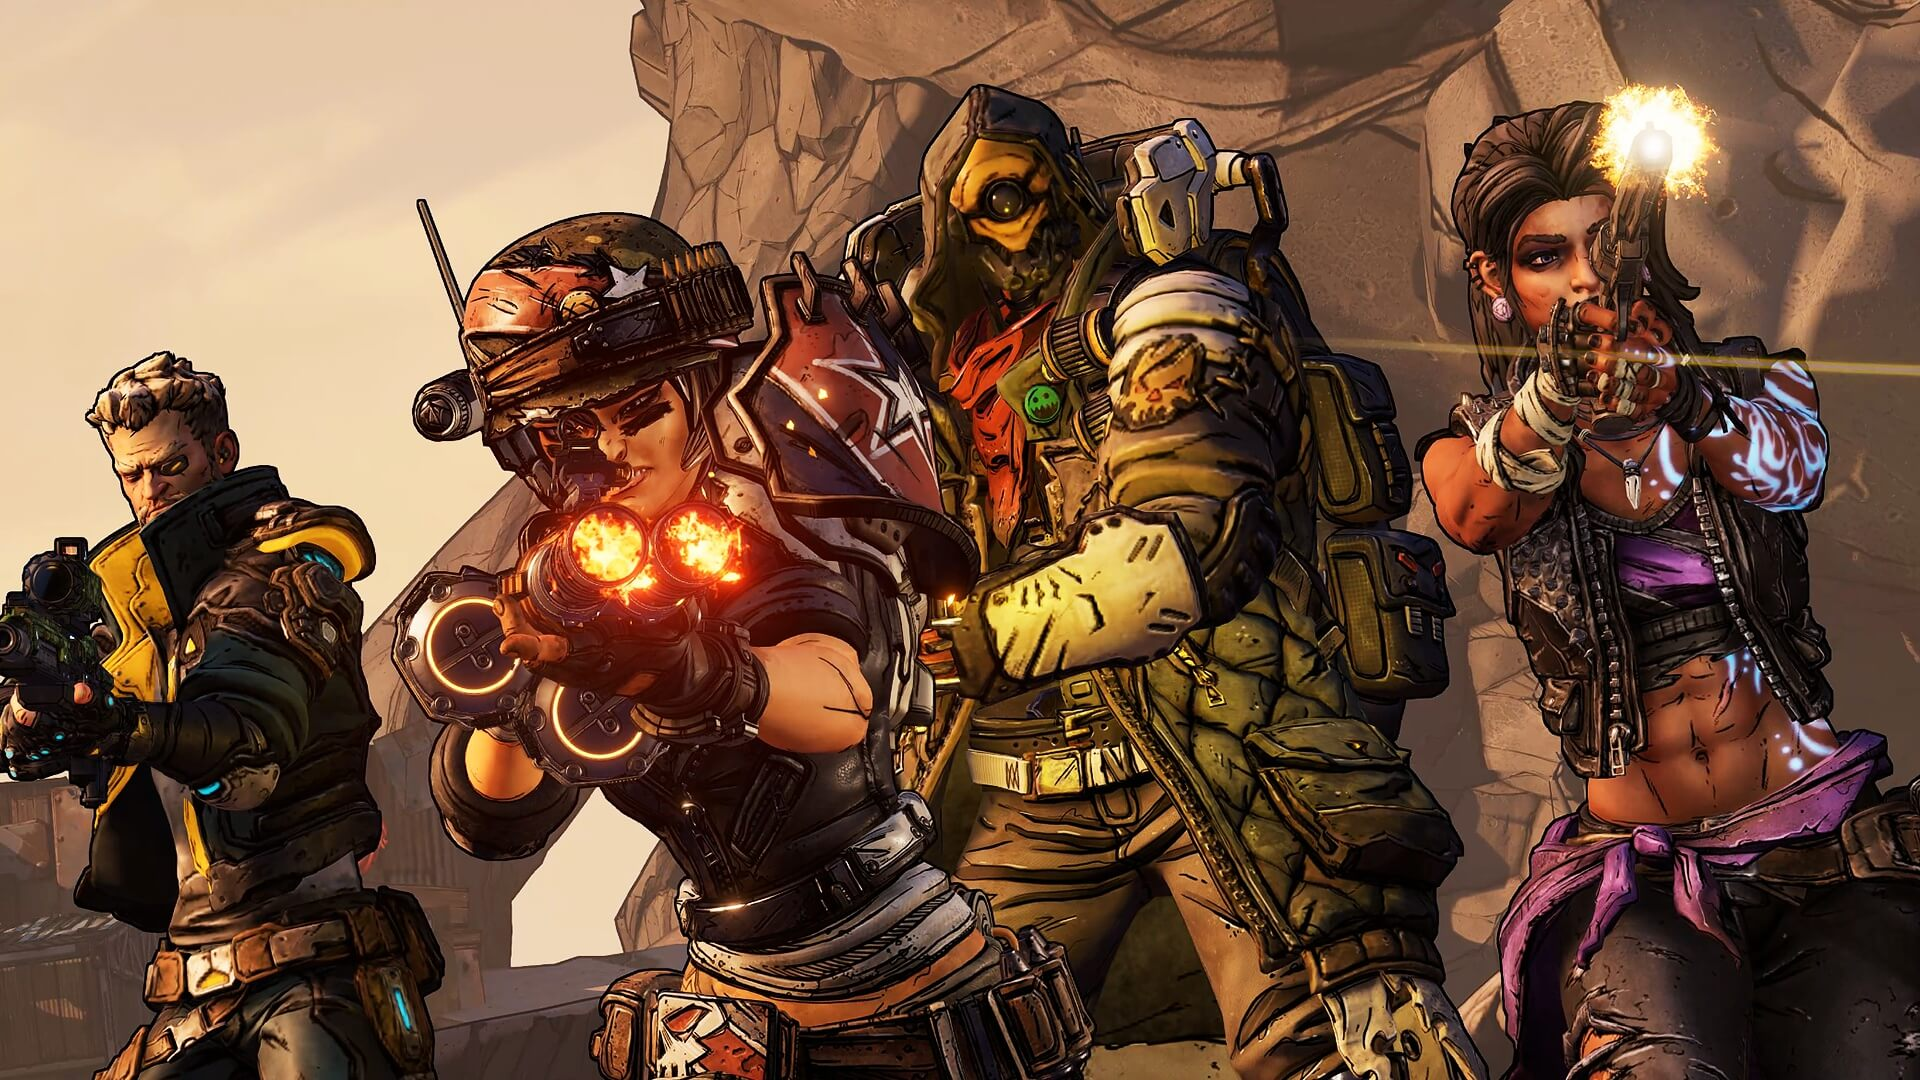 Borderlands 3: Why to Play This Shooter Action Game